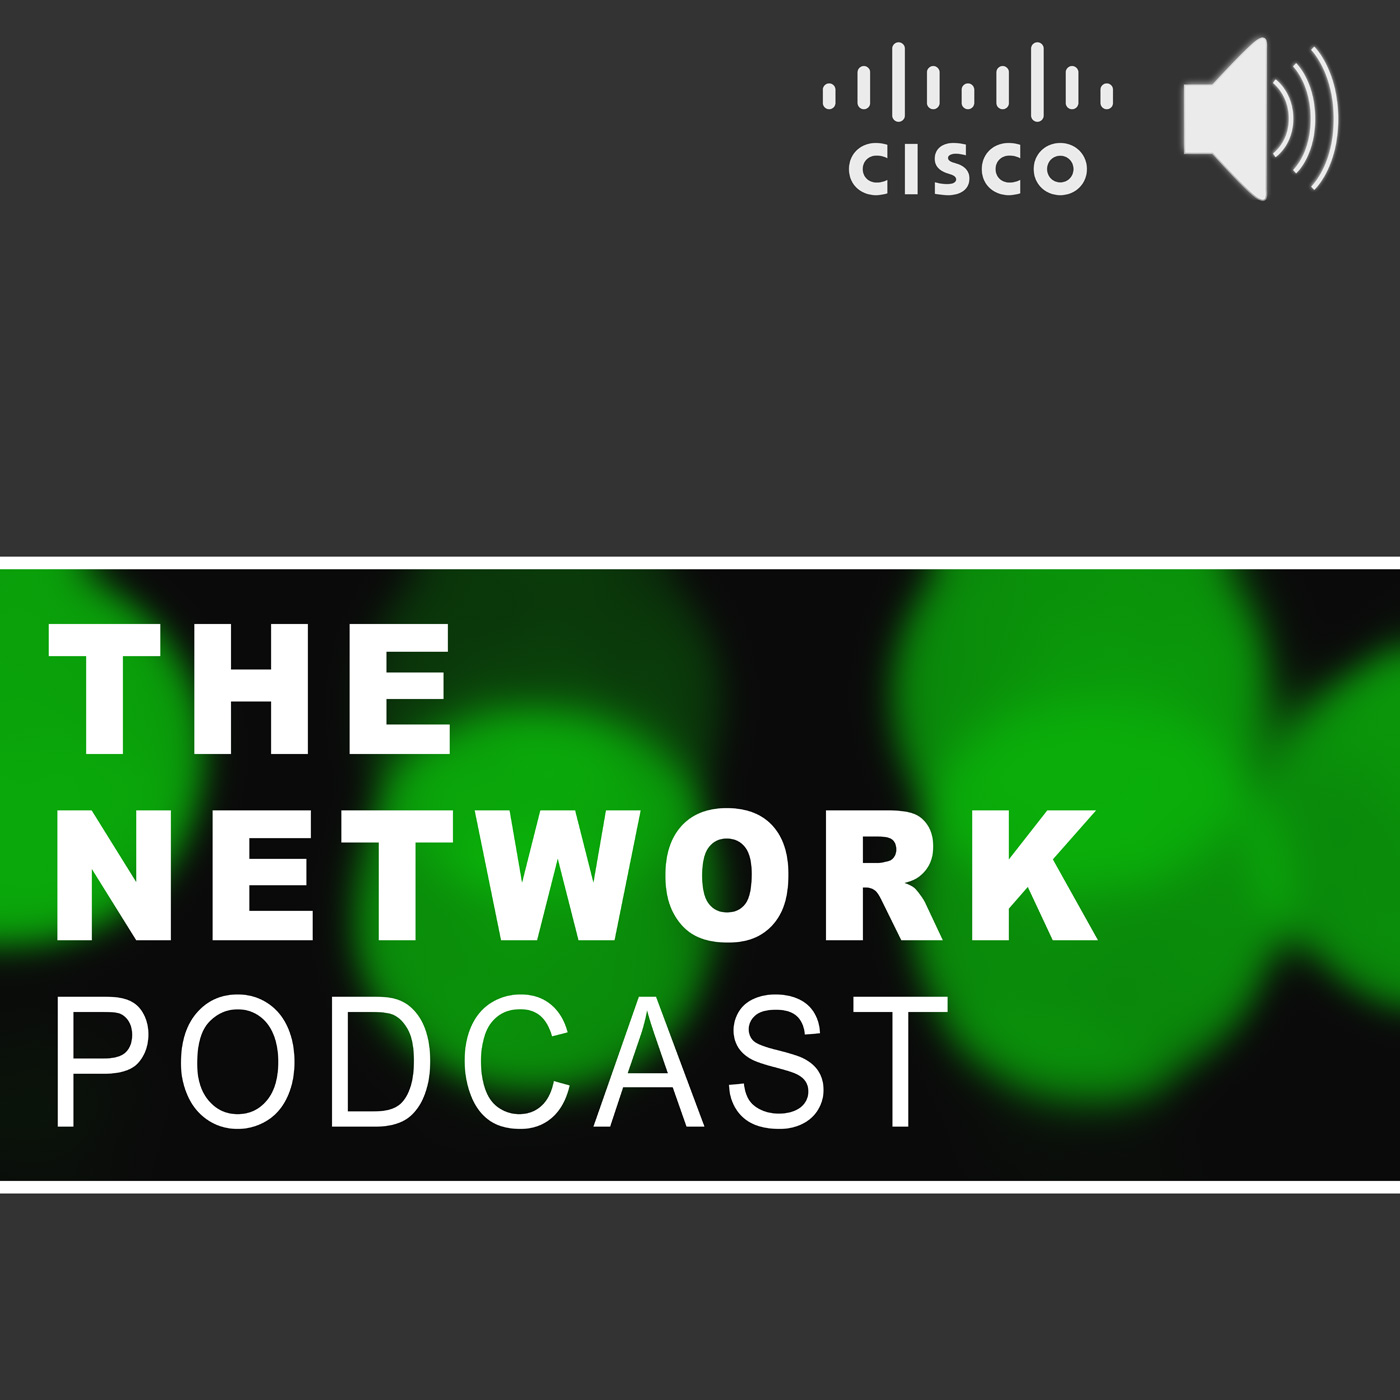 The Network Podcast